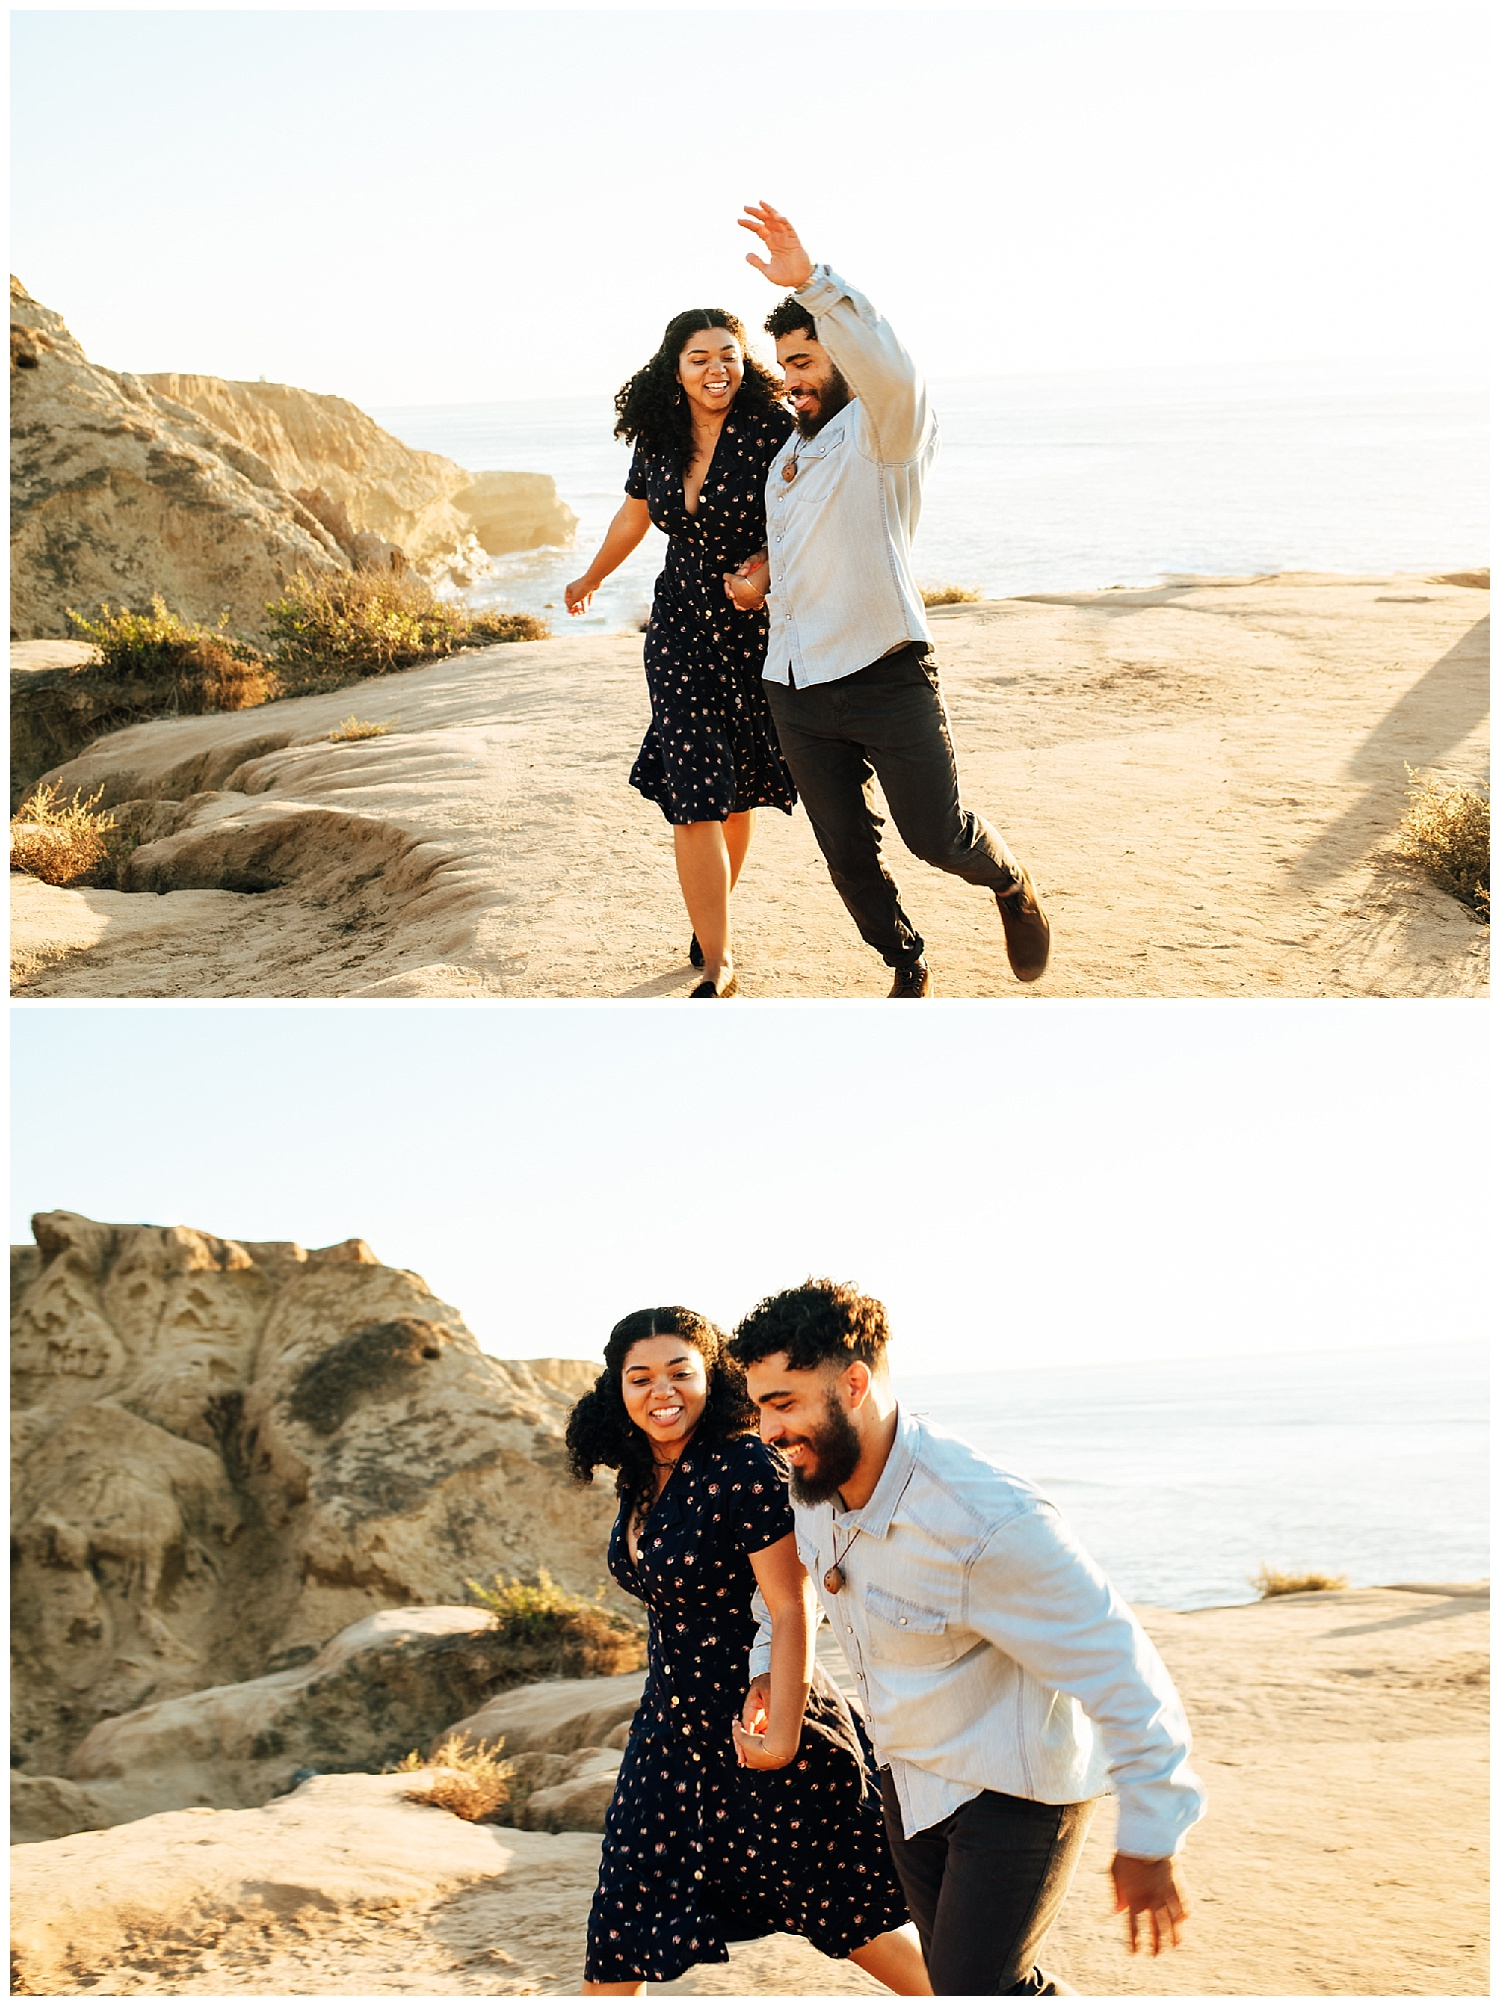 SamErica Studios - San Diego Engagement Photographer - Sunset Cliffs - Fun Couples Poses